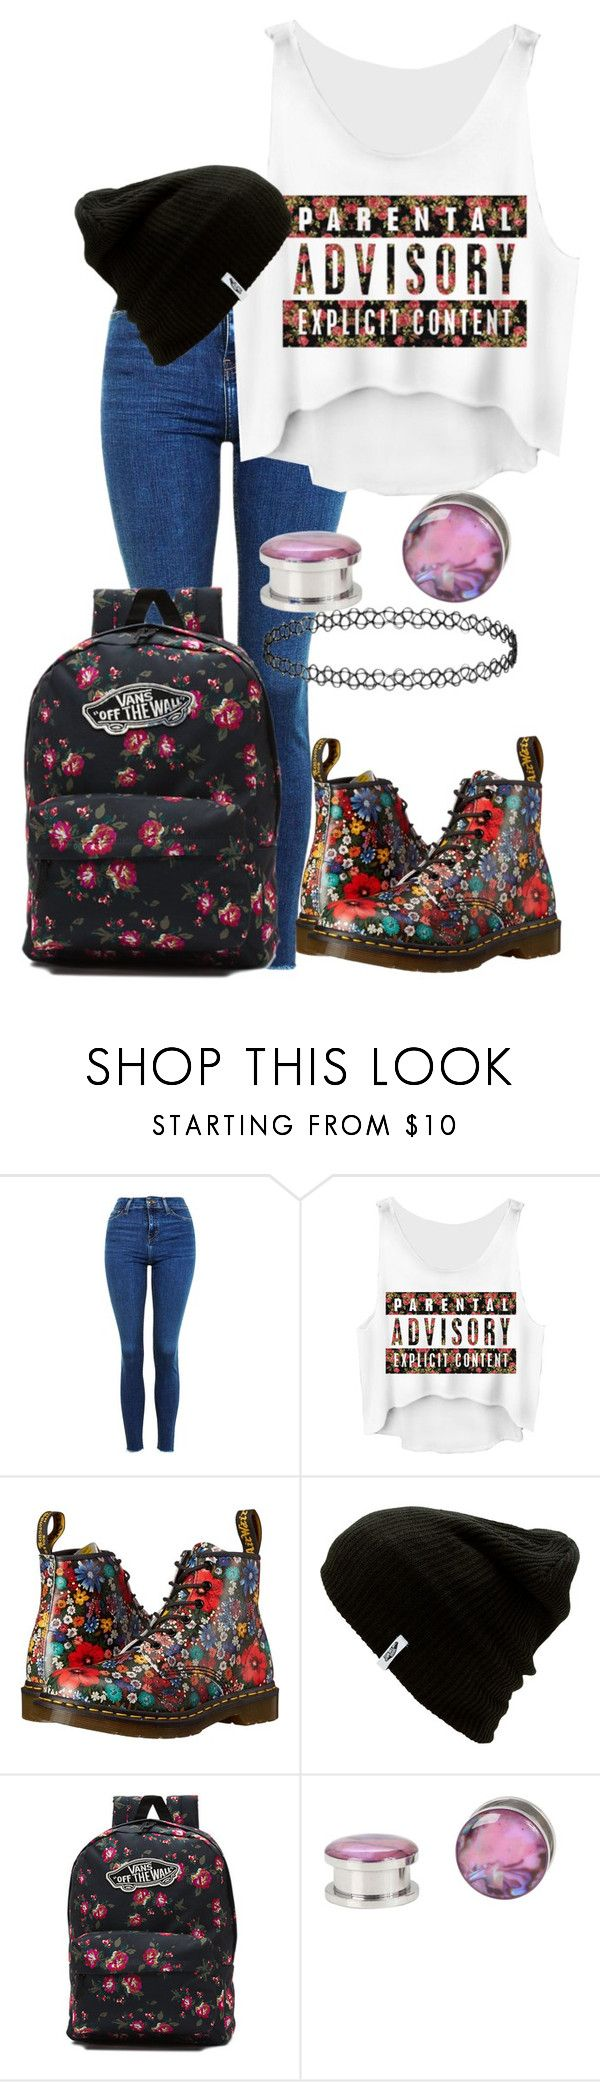 """Colin Cassady sings Blue Pants' theme song 😂😂😂"" by digital-minerva ❤ liked on Polyvore featuring Topshop, Dr. Martens and Vans"